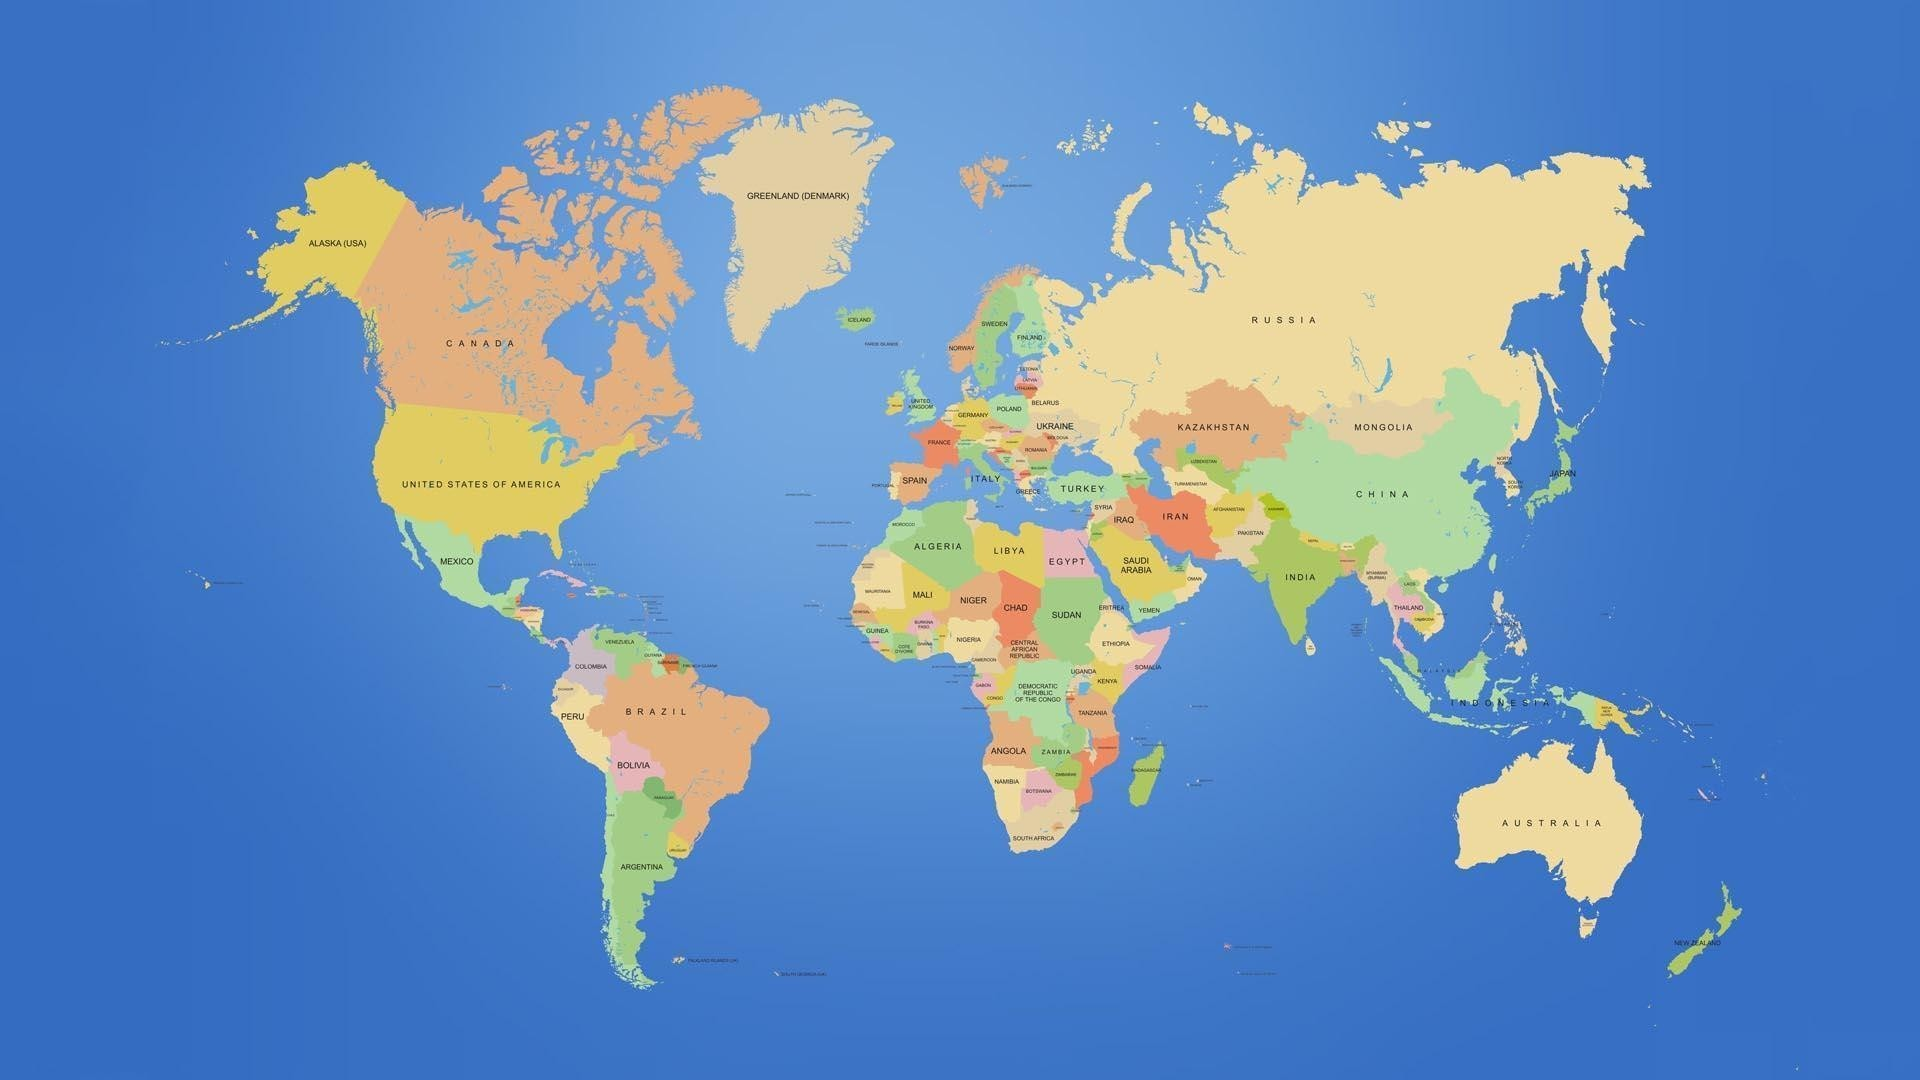 Global map wallpapers 58 background pictures 2560x1600 global map wallpapers wallpaper hd pinterest 3d world hd gumiabroncs Gallery